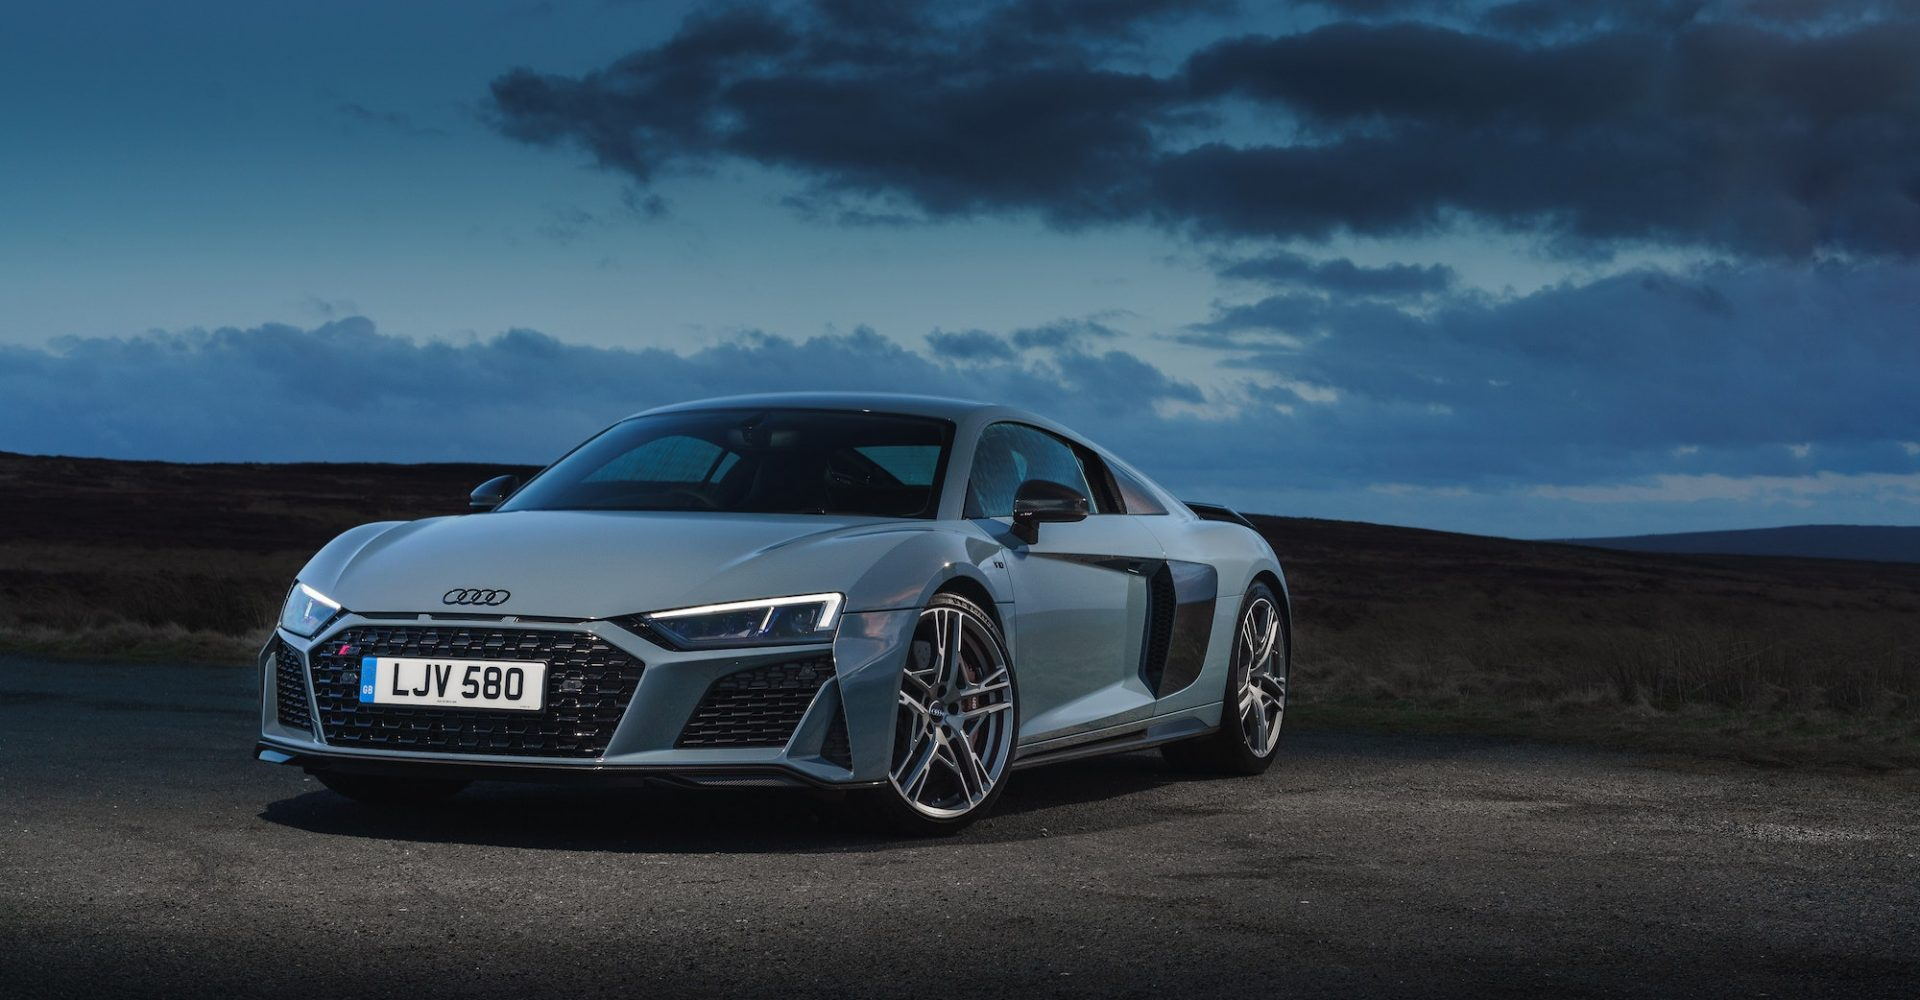 Audi applies for 'R8 Green Hell' trademark, hints at future track-focused model